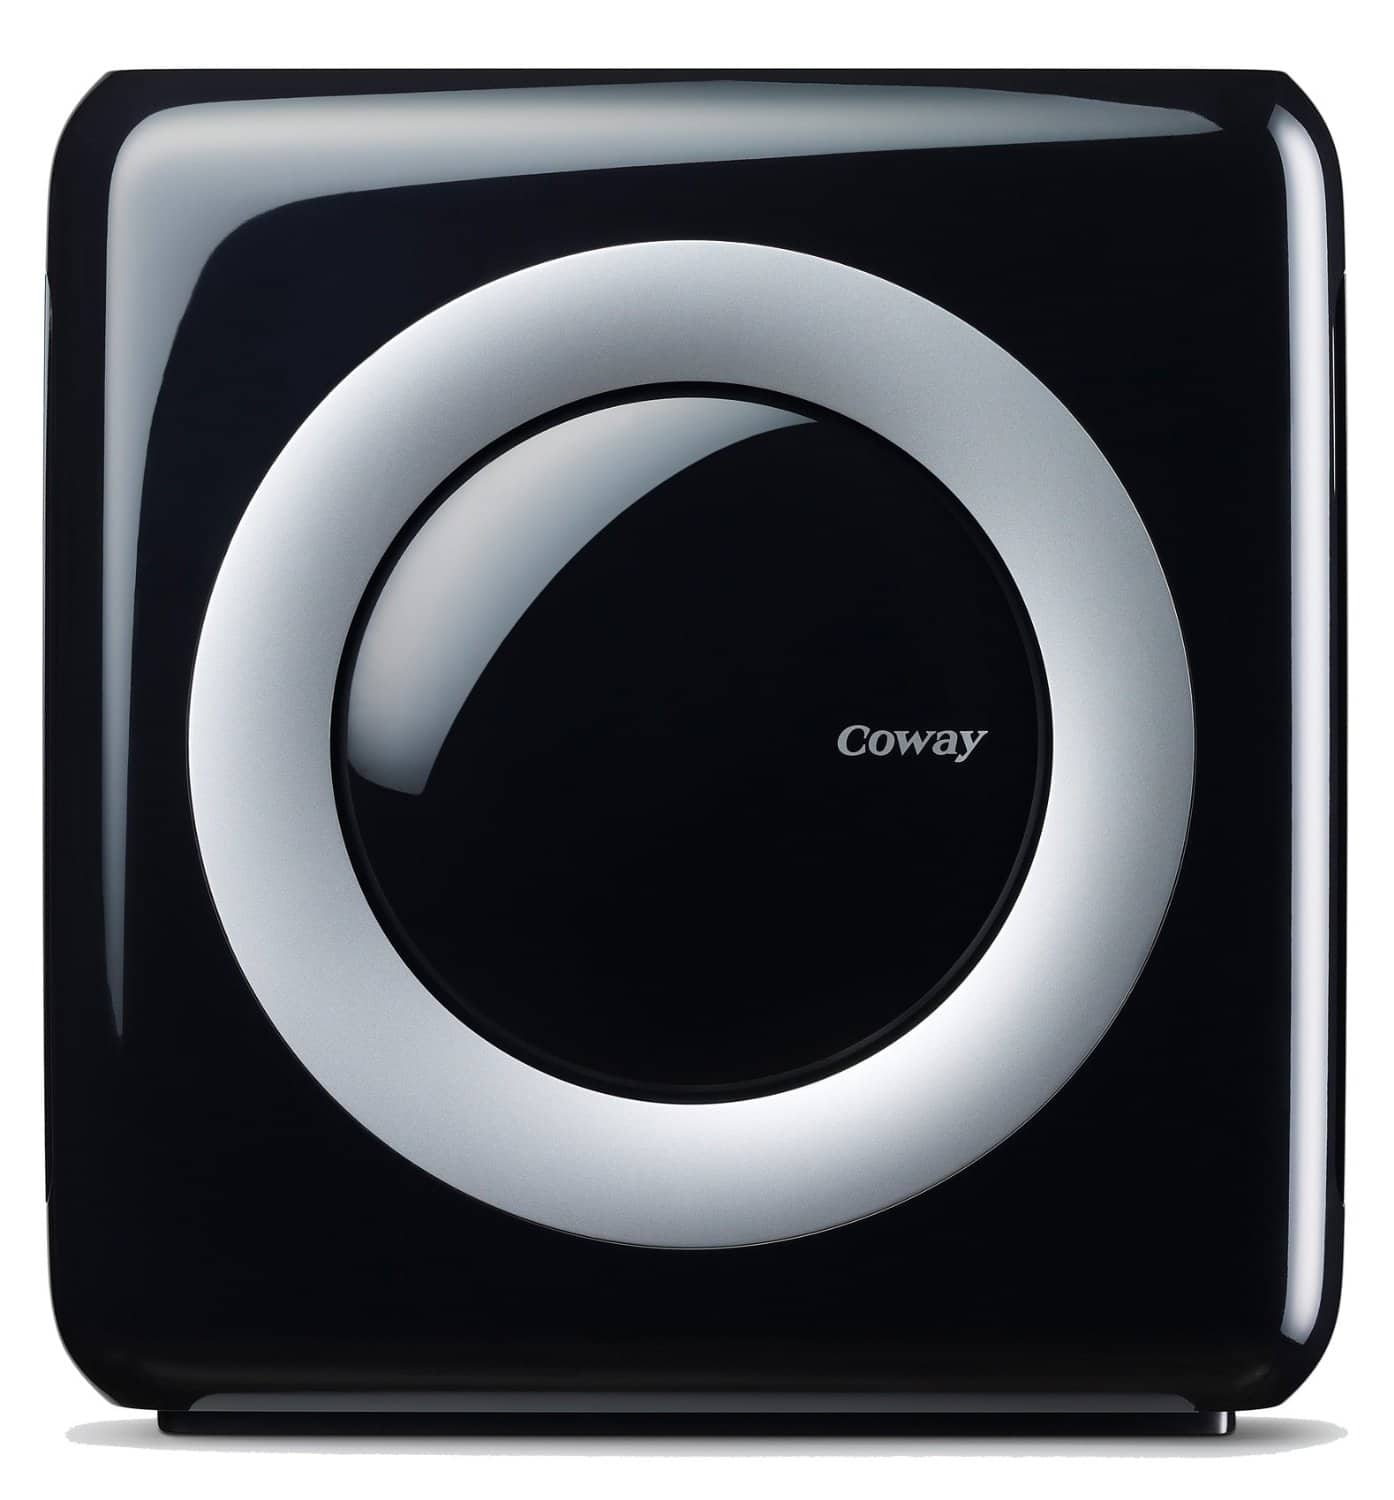 Coway AP-1512HH Mighty Air Purifier with True HEPA and Eco Mode - $132 @ Walmart with pickup